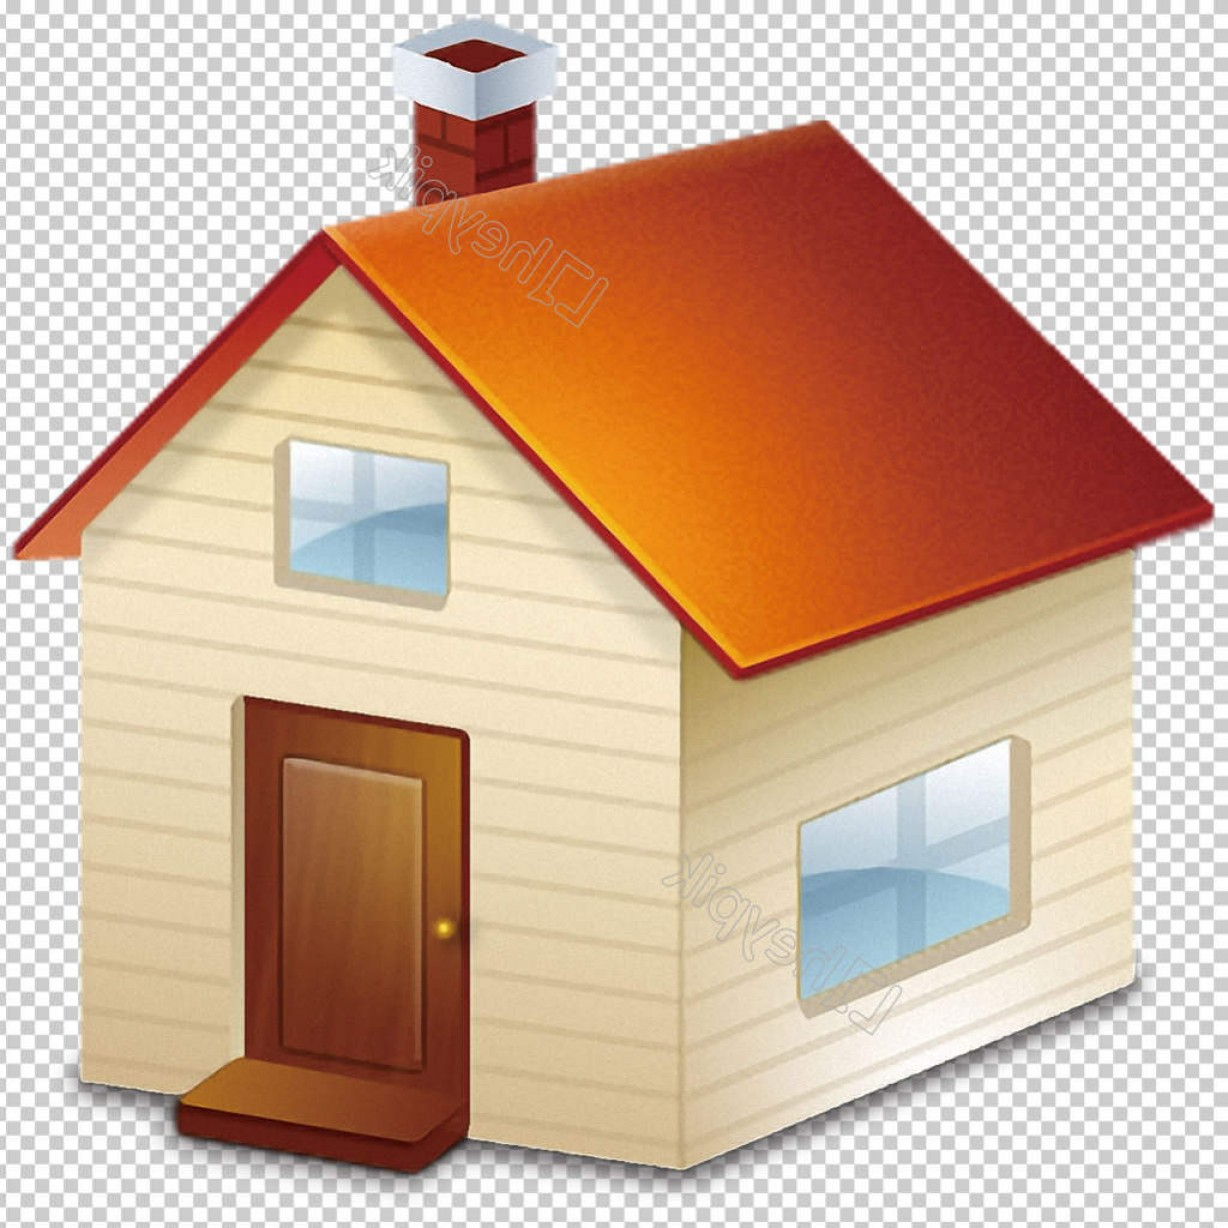 Shed PNG Vector: Hand Painted Cartoon House Icon Free Png Transparent Layer Design